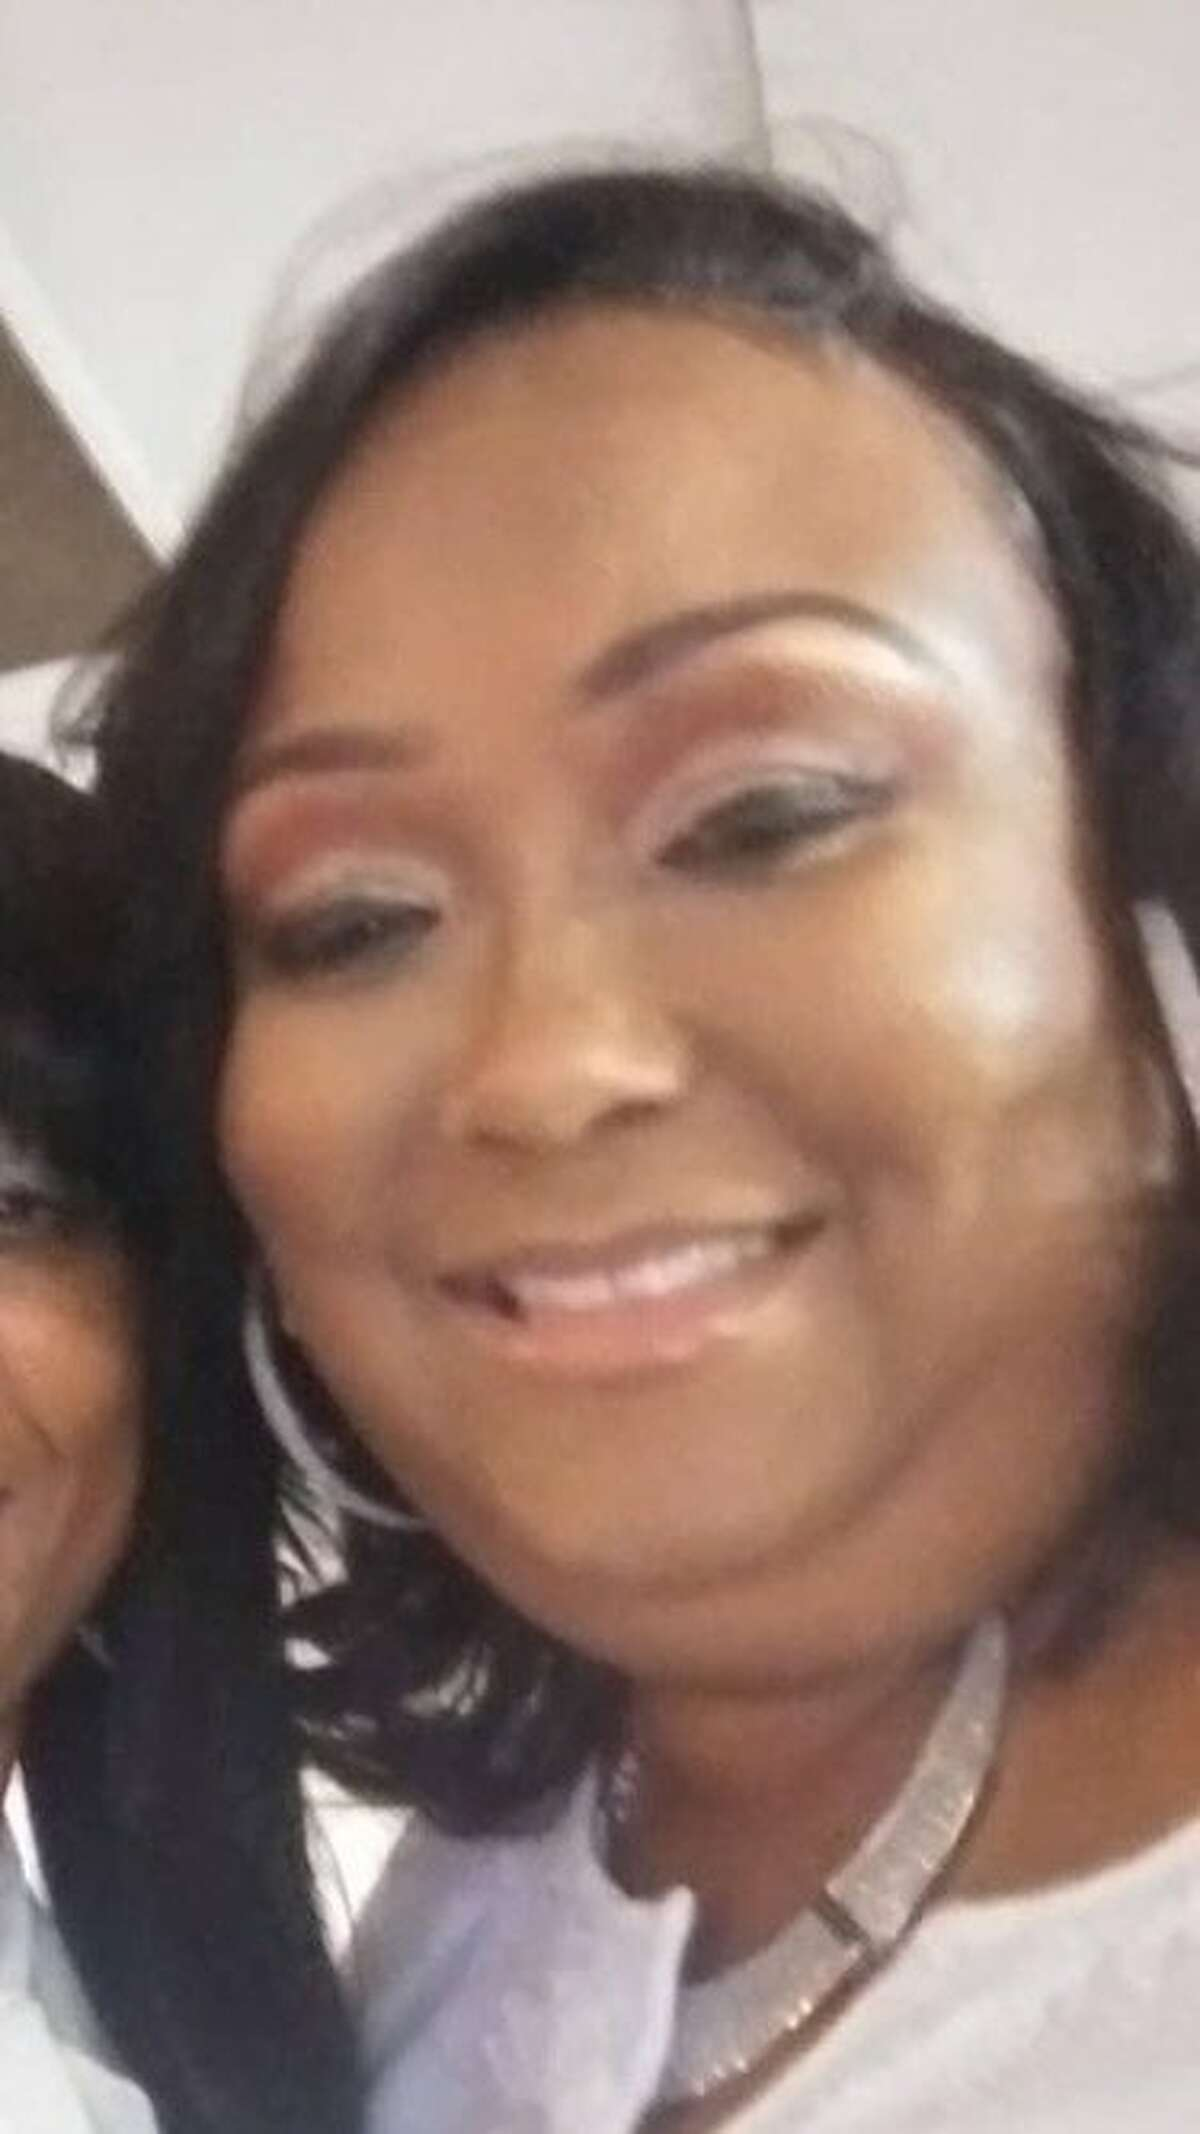 A photo of Lashawn Buffin, one of the 15 people slain in Oakland in January. Buffin was gunned down in her home near the 8300 block of A Street when at least 15 shots were fired just outside on Jan. 16. She died three days later and was not believed to be the target of the attack.